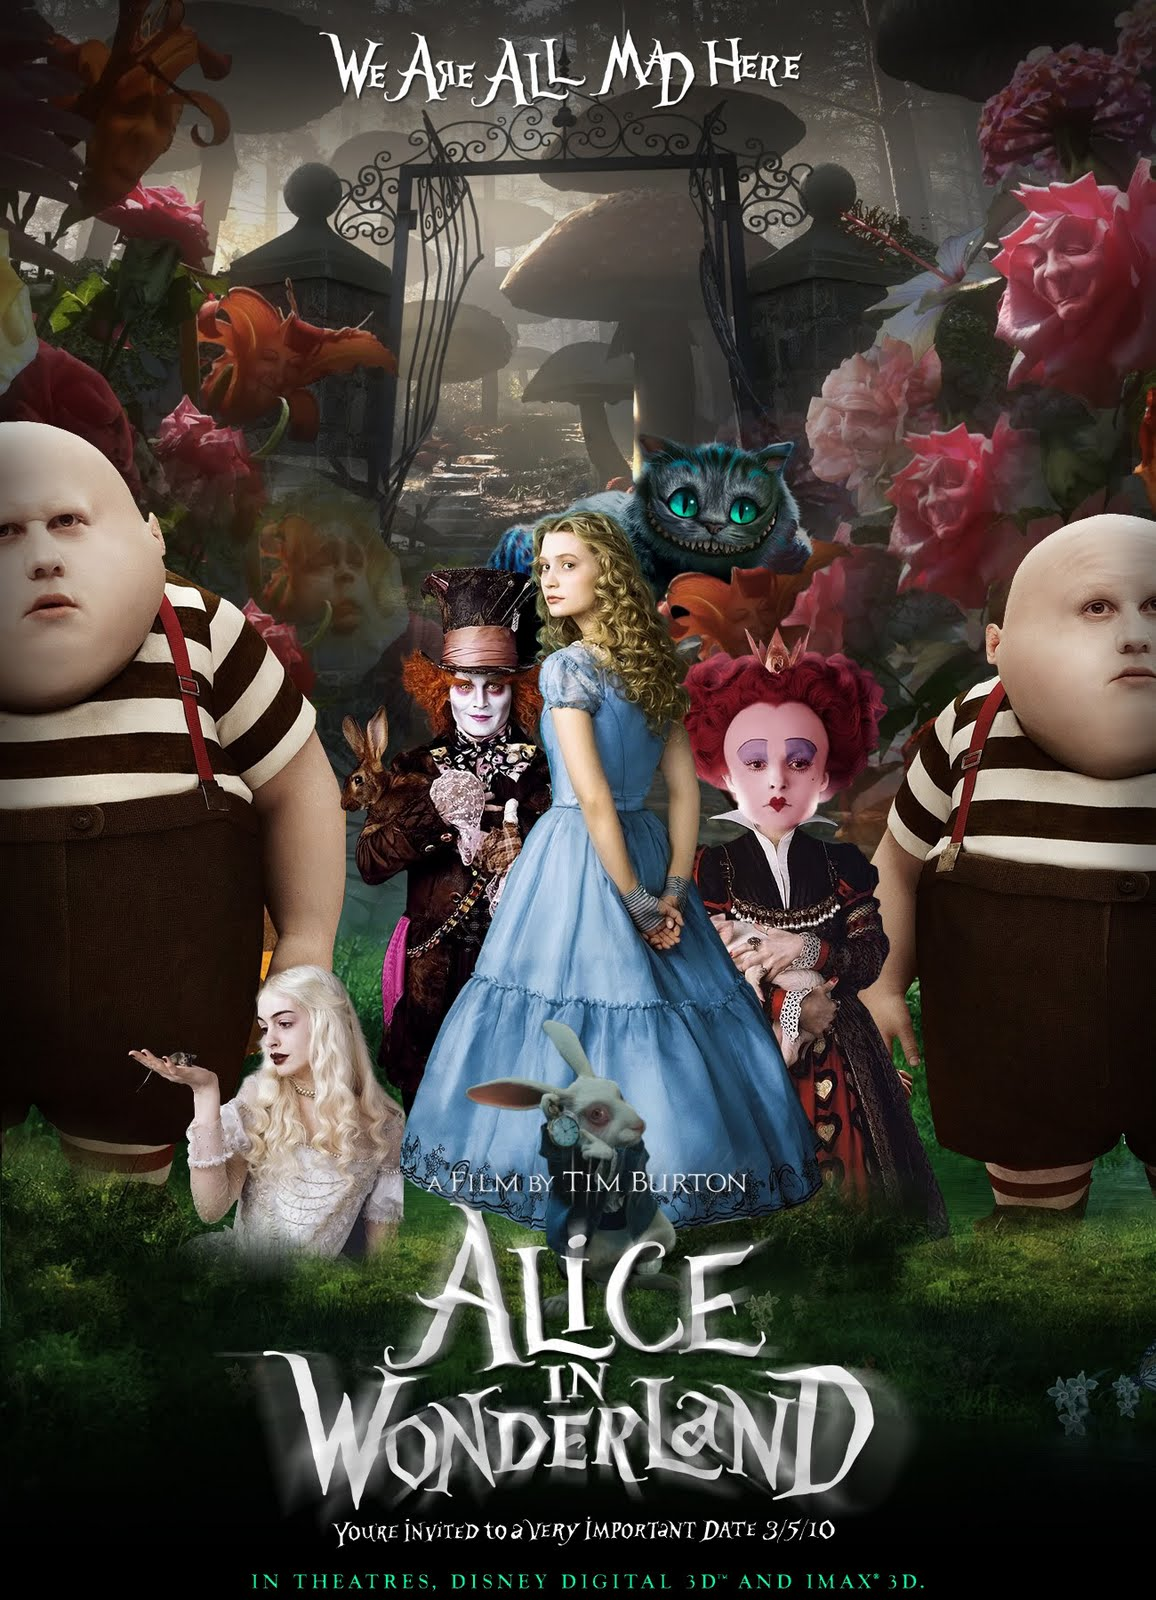 http://3.bp.blogspot.com/_xE6IBf39FYs/TEy5F04FleI/AAAAAAAABxs/qKDvvXJBM68/s1600/Alice-in-Wonderland-3D-Movie-Poster-Johnny-Depp.jpg